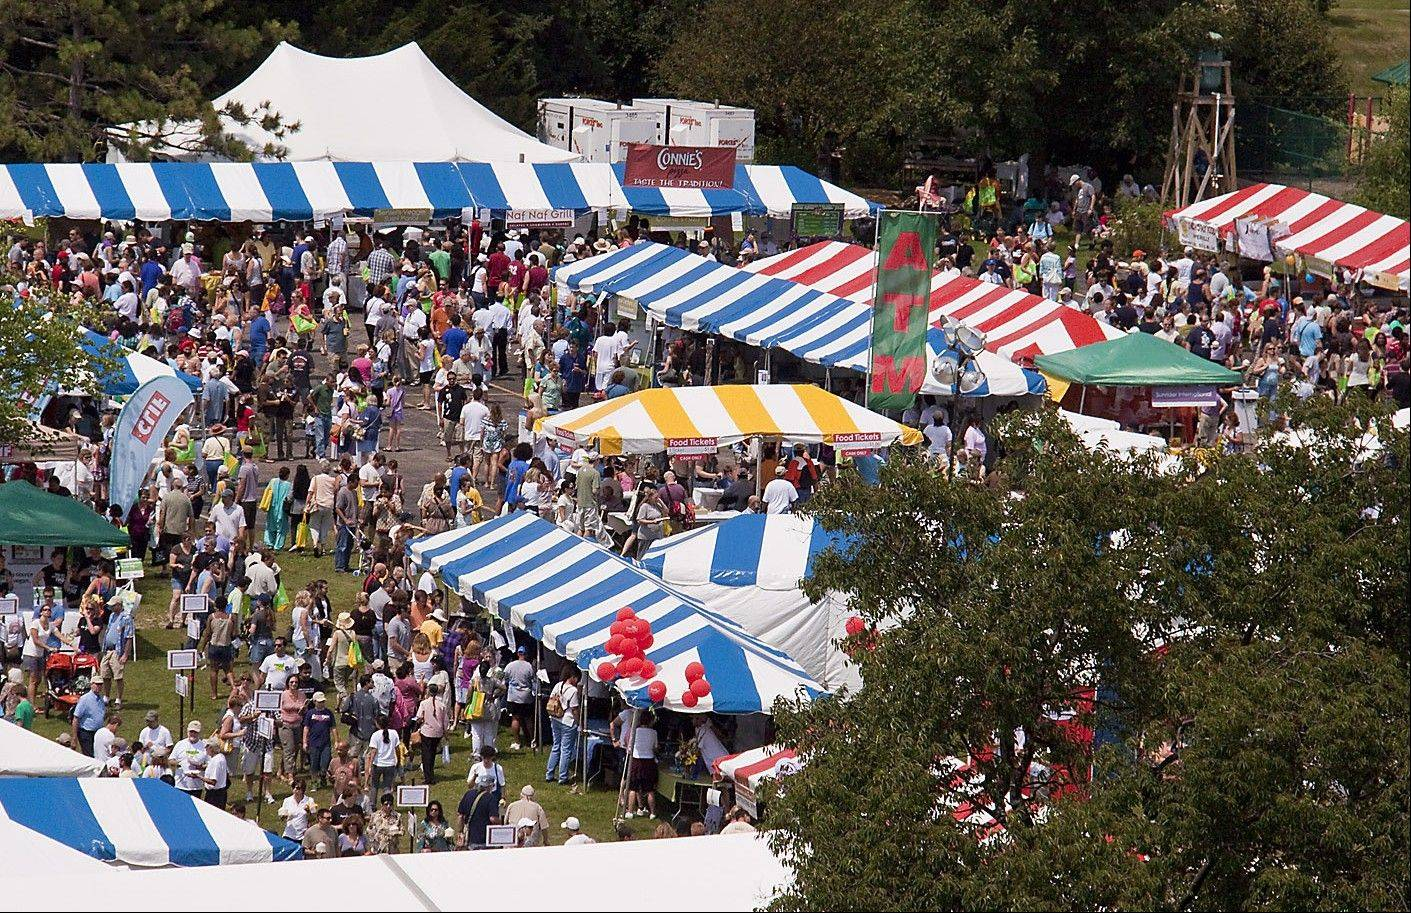 The number of people who come to Naperville for Veggie Fest has been growing substantially for the past six years. This weekend, 25,000 people are expected to attend, making it the largest vegetarian food festival in the country.